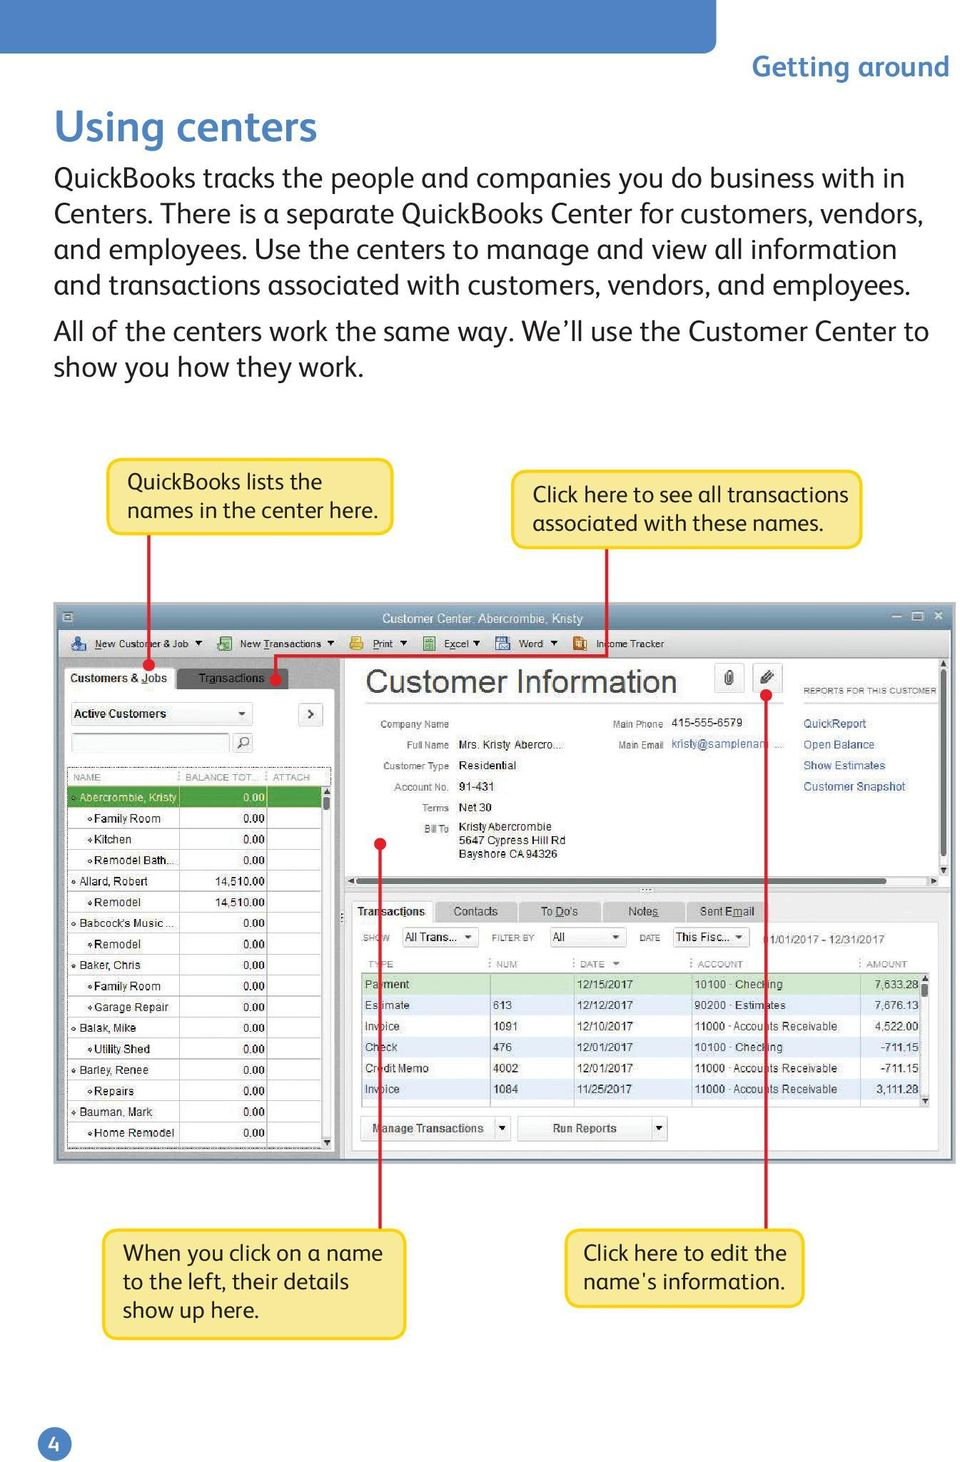 Use the centers to manage and view all information and transactions associated with customers, vendors, and employees.